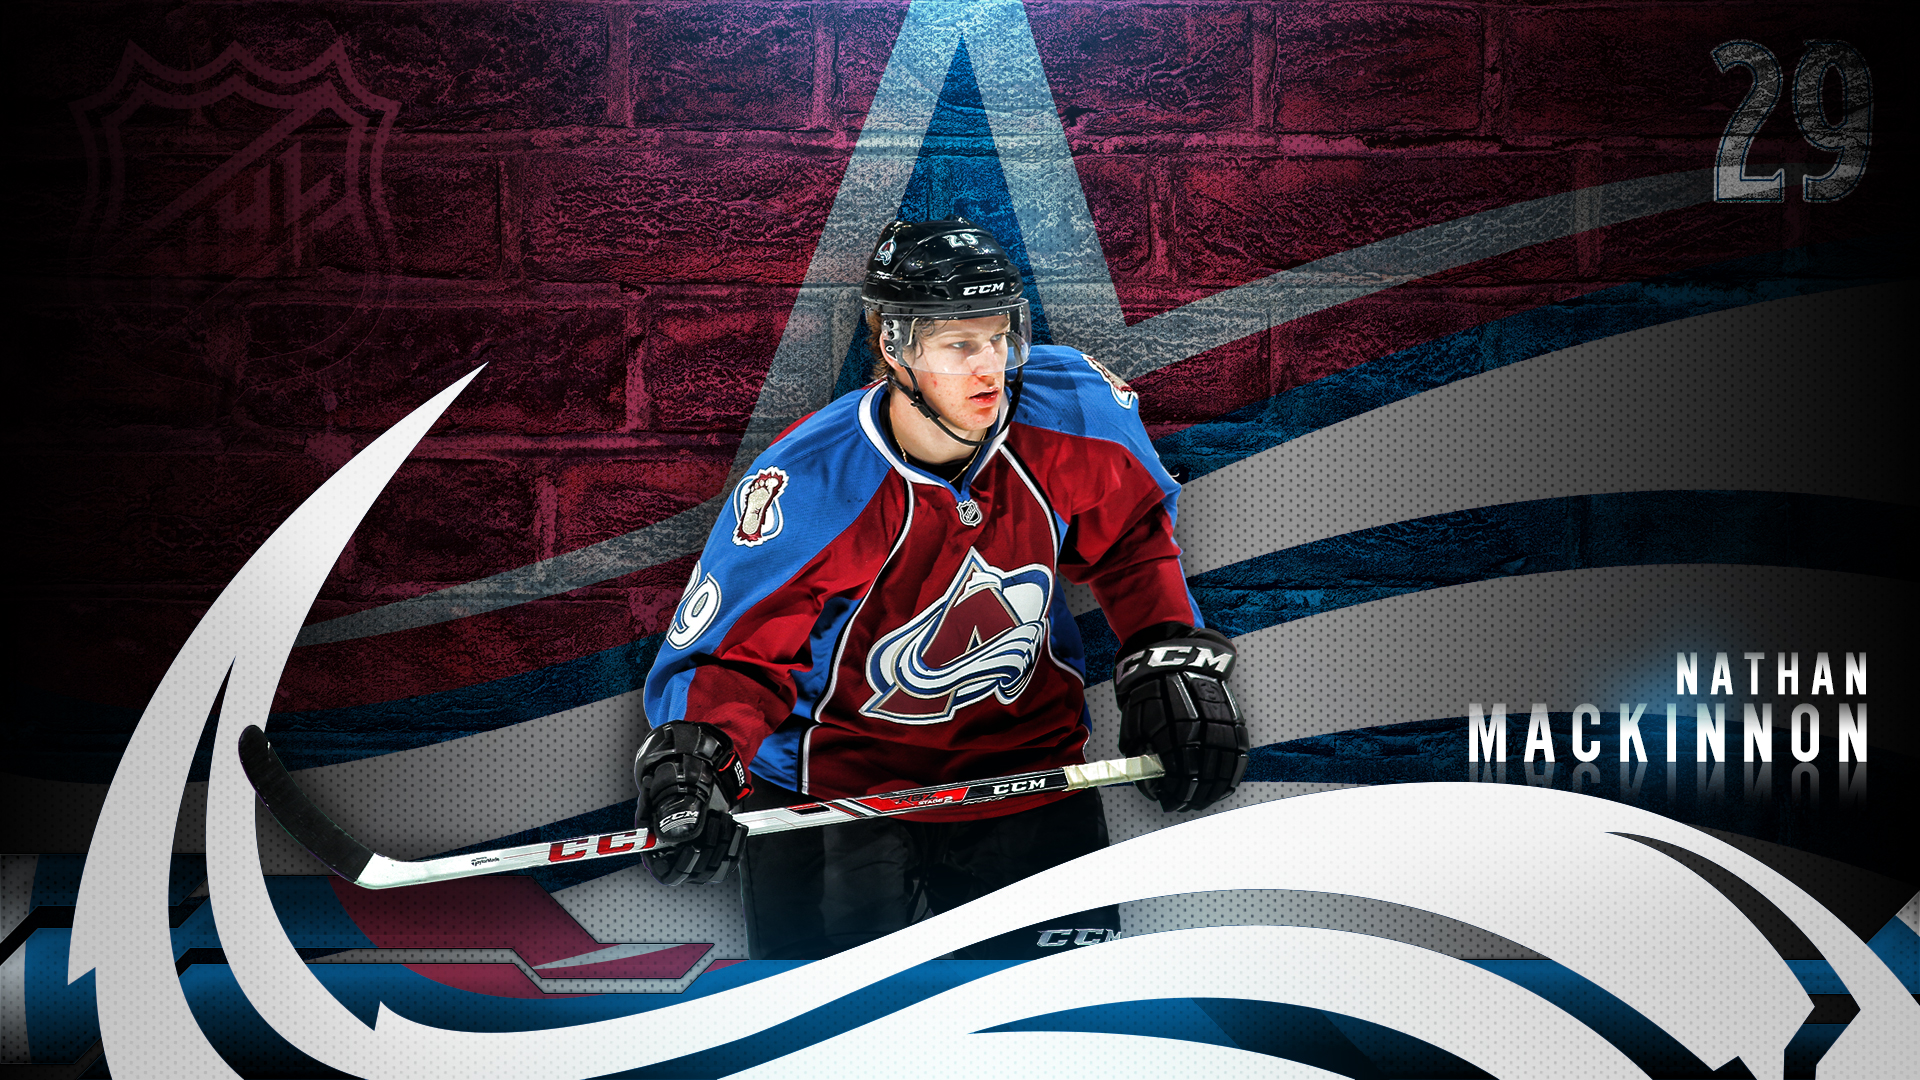 Nathan Mackinnon Wall by DenverSportsWalls on DeviantArt